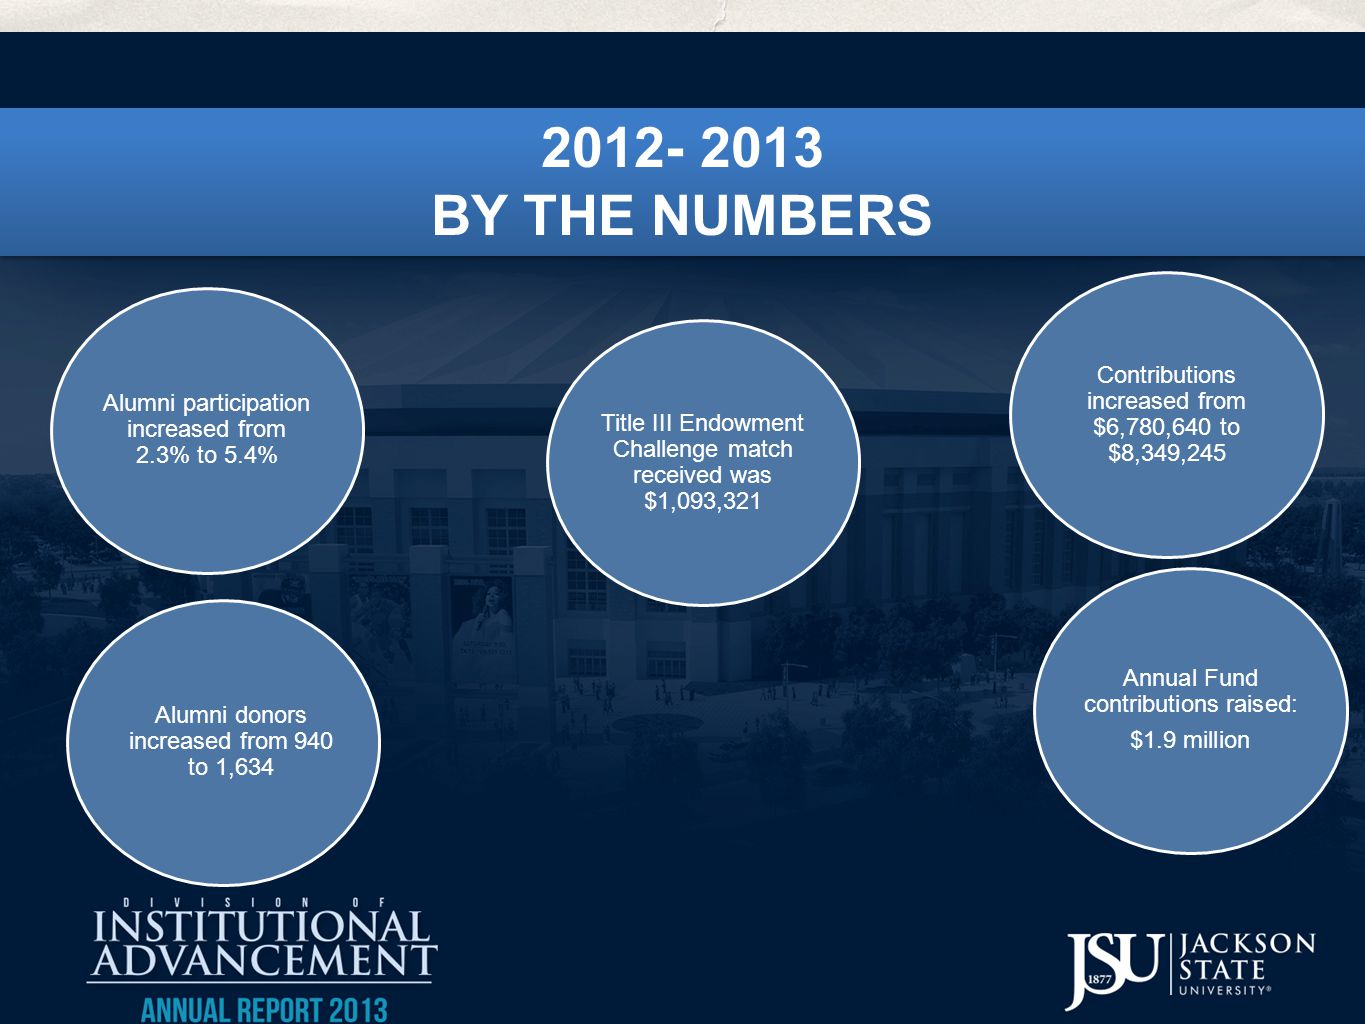 2012- 2013 BY THE NUMBERS 2012- 2013 BY THE NUMBERS Contributions increased from $6,780,640 to $8,349,245 Alumni participation increased from 2.3% to 5.4% Alumni donors increased from 940 to 1,634 Annual Fund contributions raised: $1.9 million Title III Endowment Challenge match received was $1,093,321